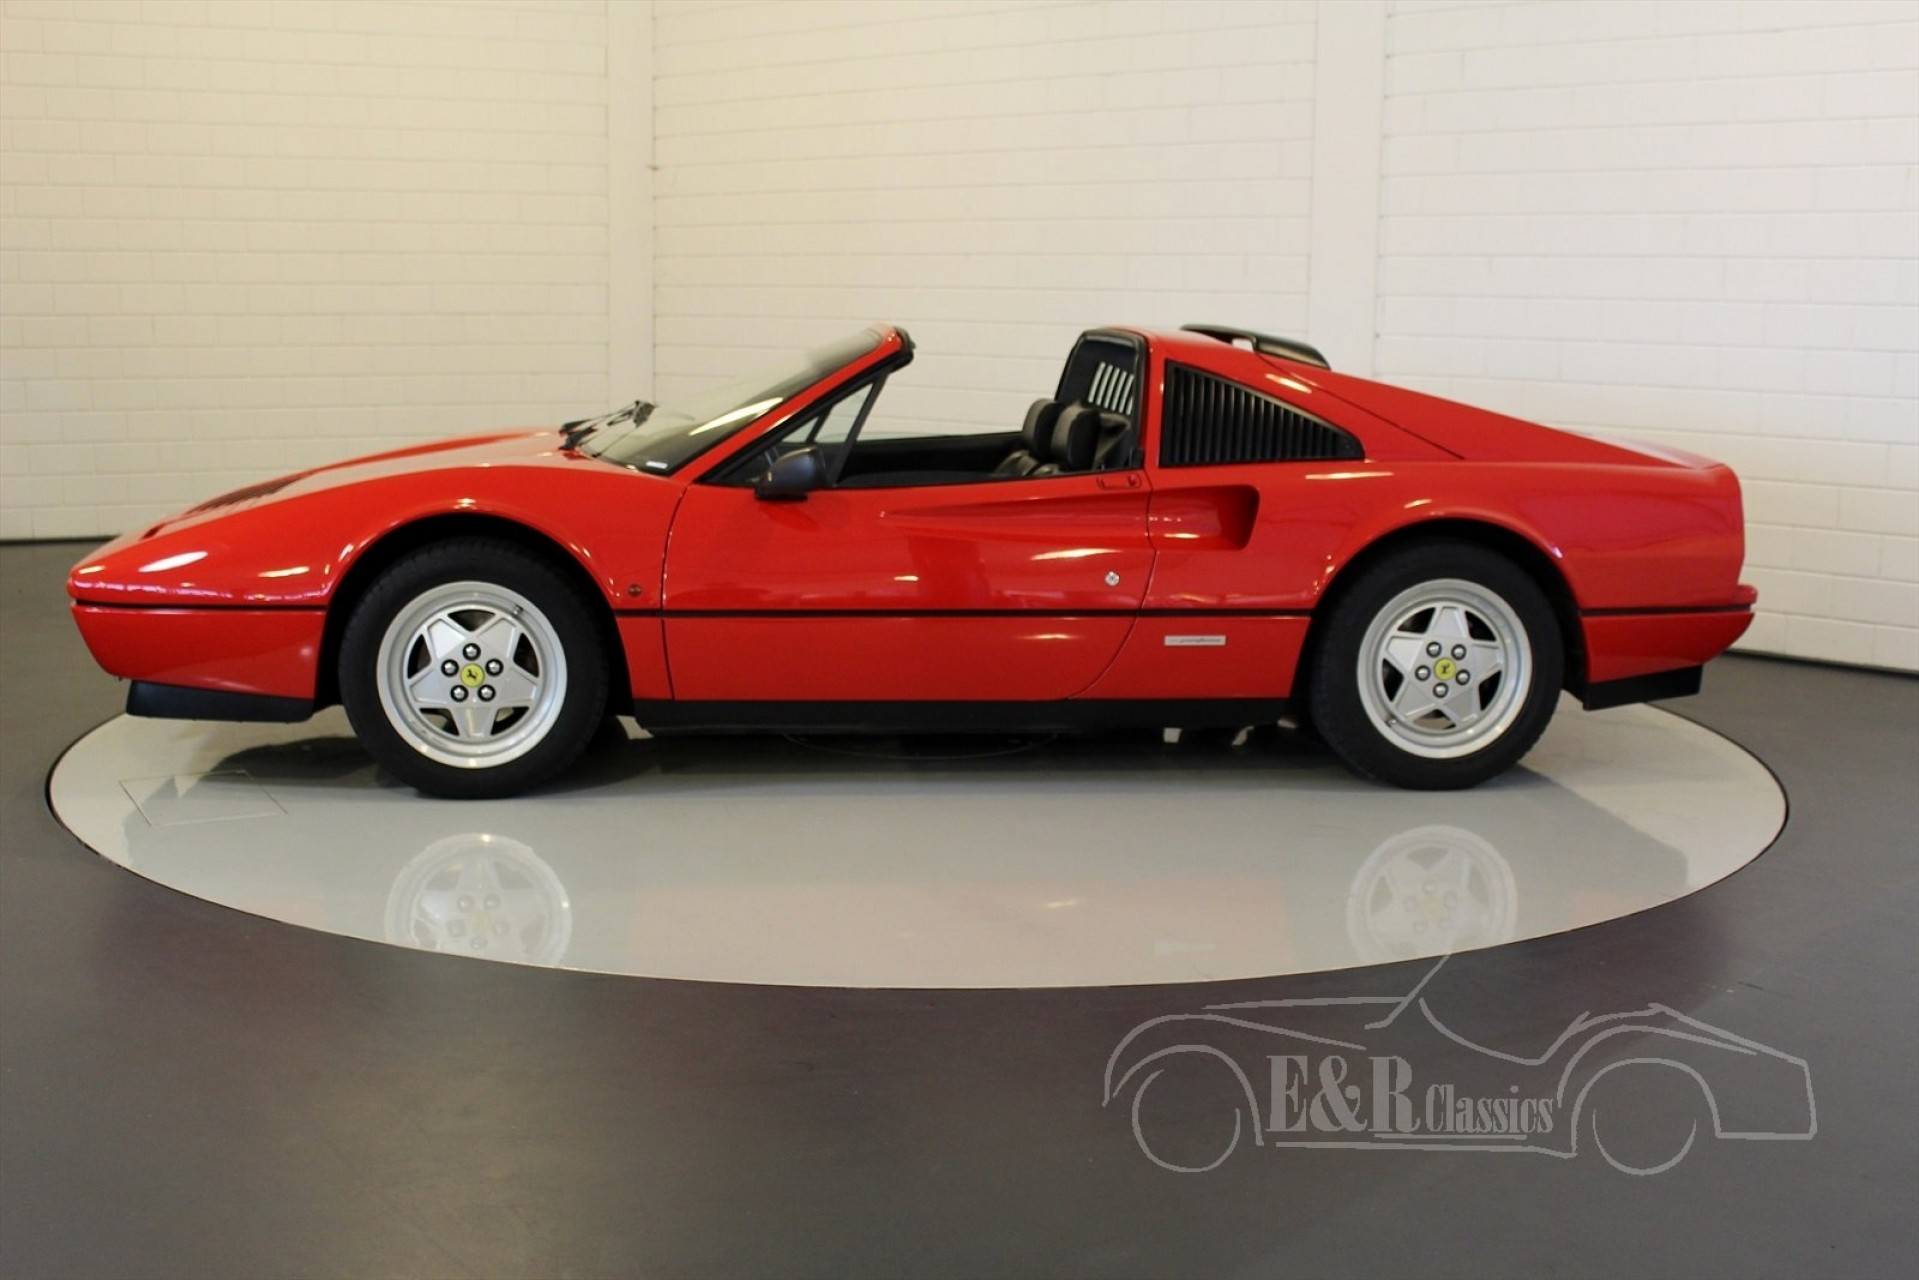 ferrari 328 gts 1989 vendre erclassics. Black Bedroom Furniture Sets. Home Design Ideas